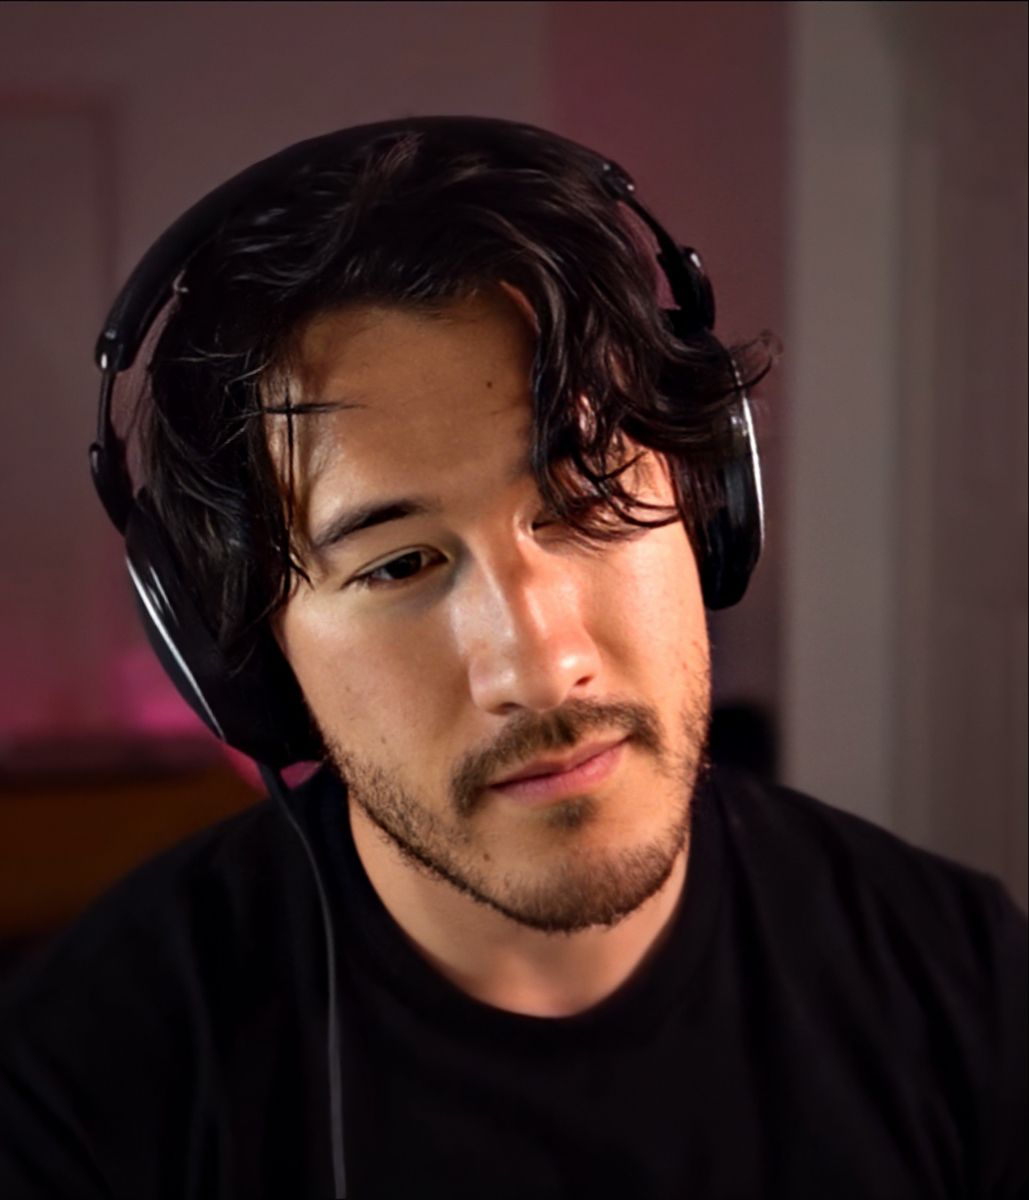 #GetWellSoonMark #getwellsoonmarkiplier I love this man and the fact I saw his video on my youtube hurts me but now that I have watched it, I'm happy he's okay. He can make a joke about being in a hospital just makes me confident he's okay. Get well soon bud. We love you Mark <3